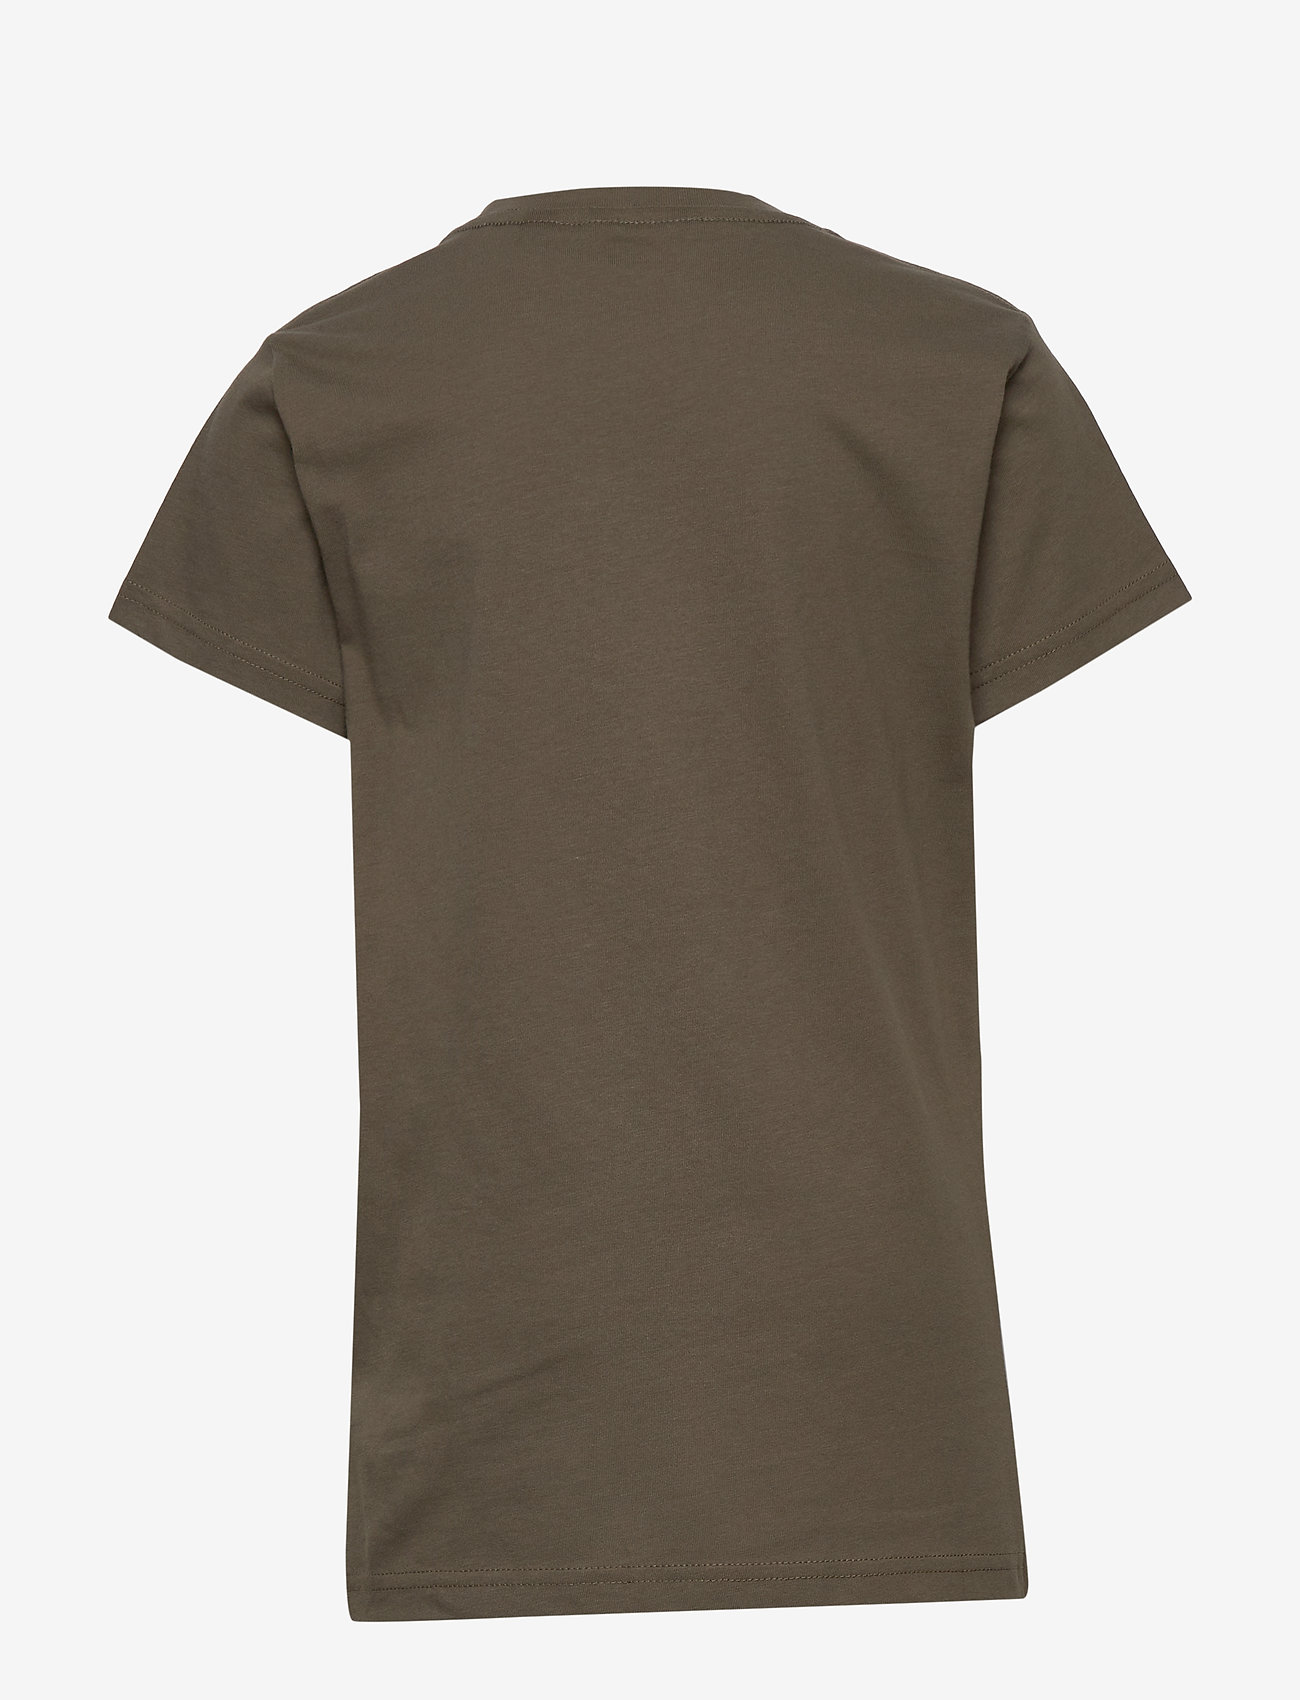 GANT - D1. MEDIUM SHIELD SS T-SHIRT - kurzärmelige - sea turtle - 1